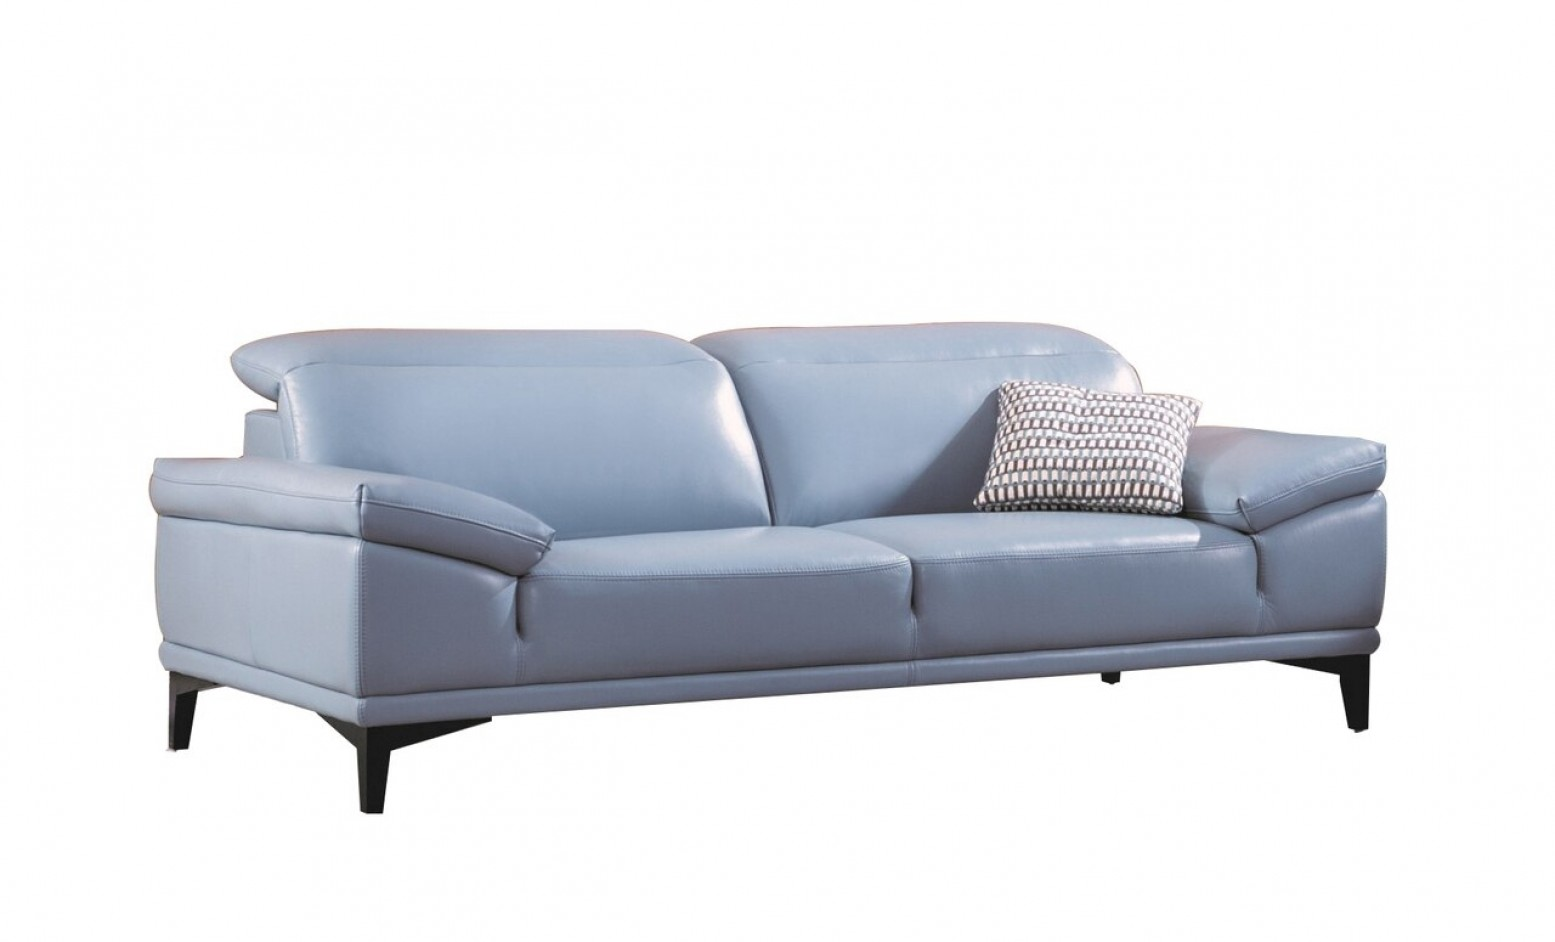 S215 Top Grain Leather Sofa Aqua By Beverly Hills Furniture Sohomod Com